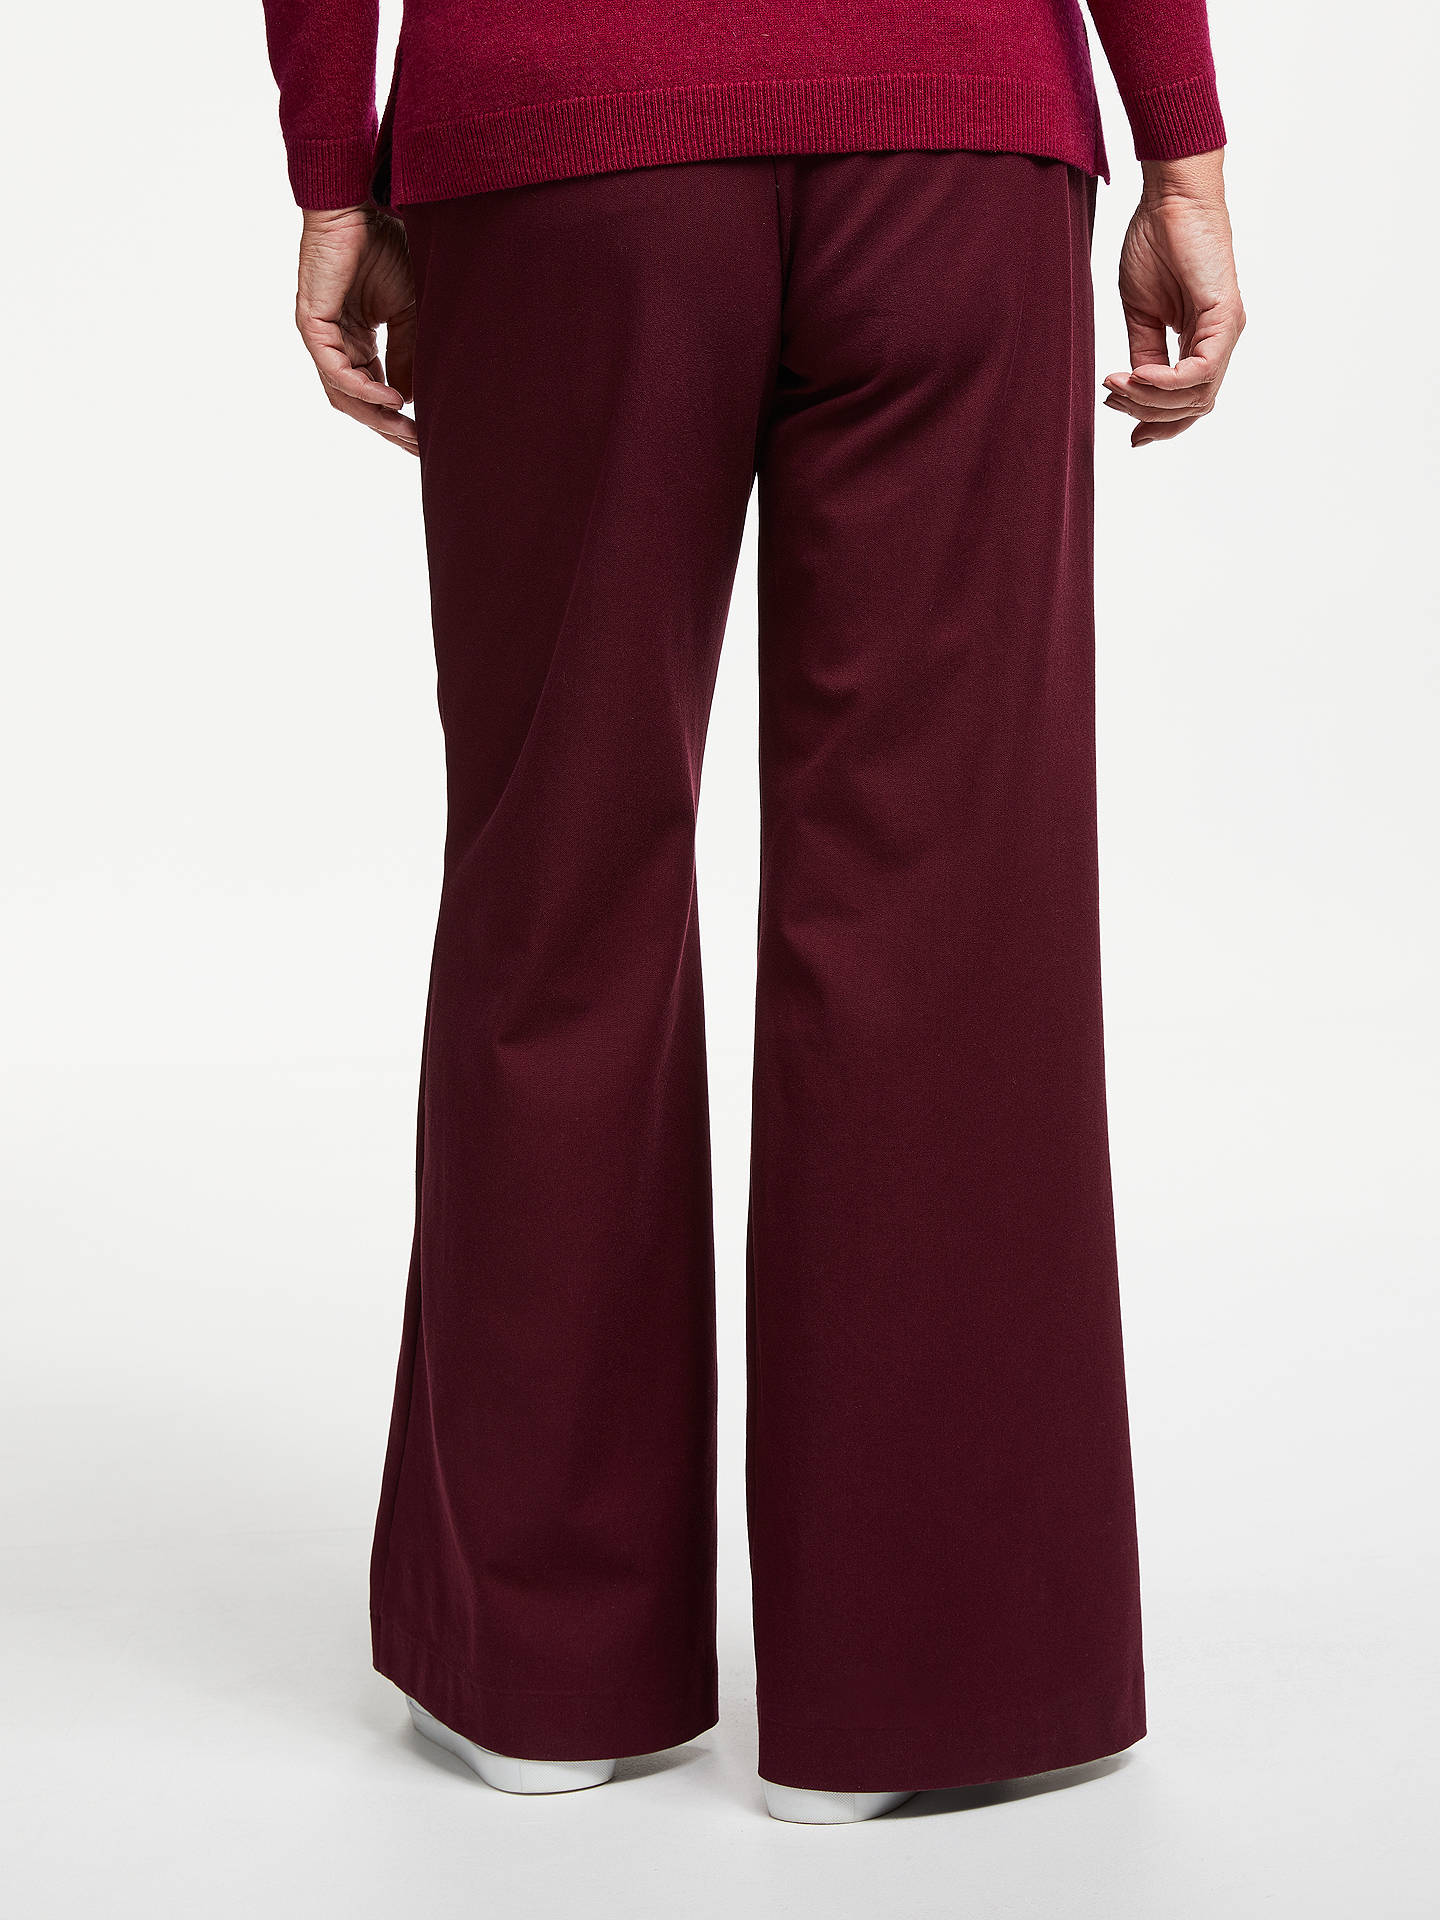 BuyJohn Lewis & Partners Bi-Stretch Wide Leg Trousers, Wine, 14 Online at johnlewis.com